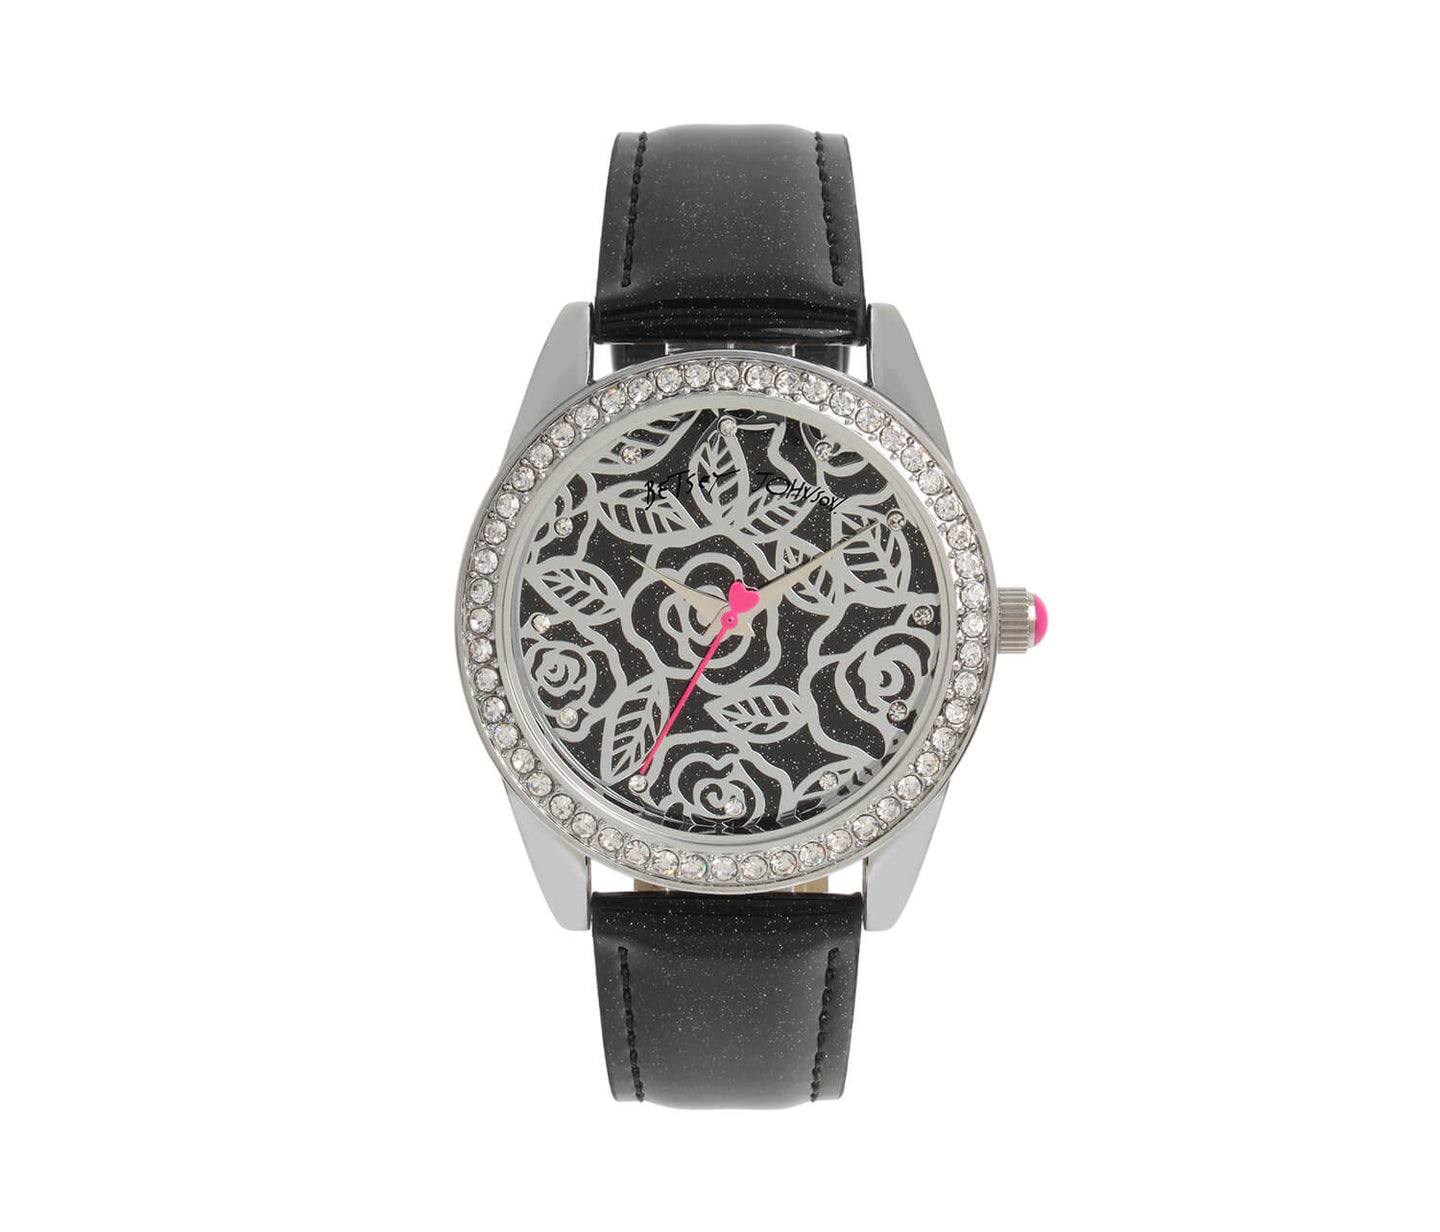 METALWORK ROSES WATCH BLACK - JEWELRY - Betsey Johnson